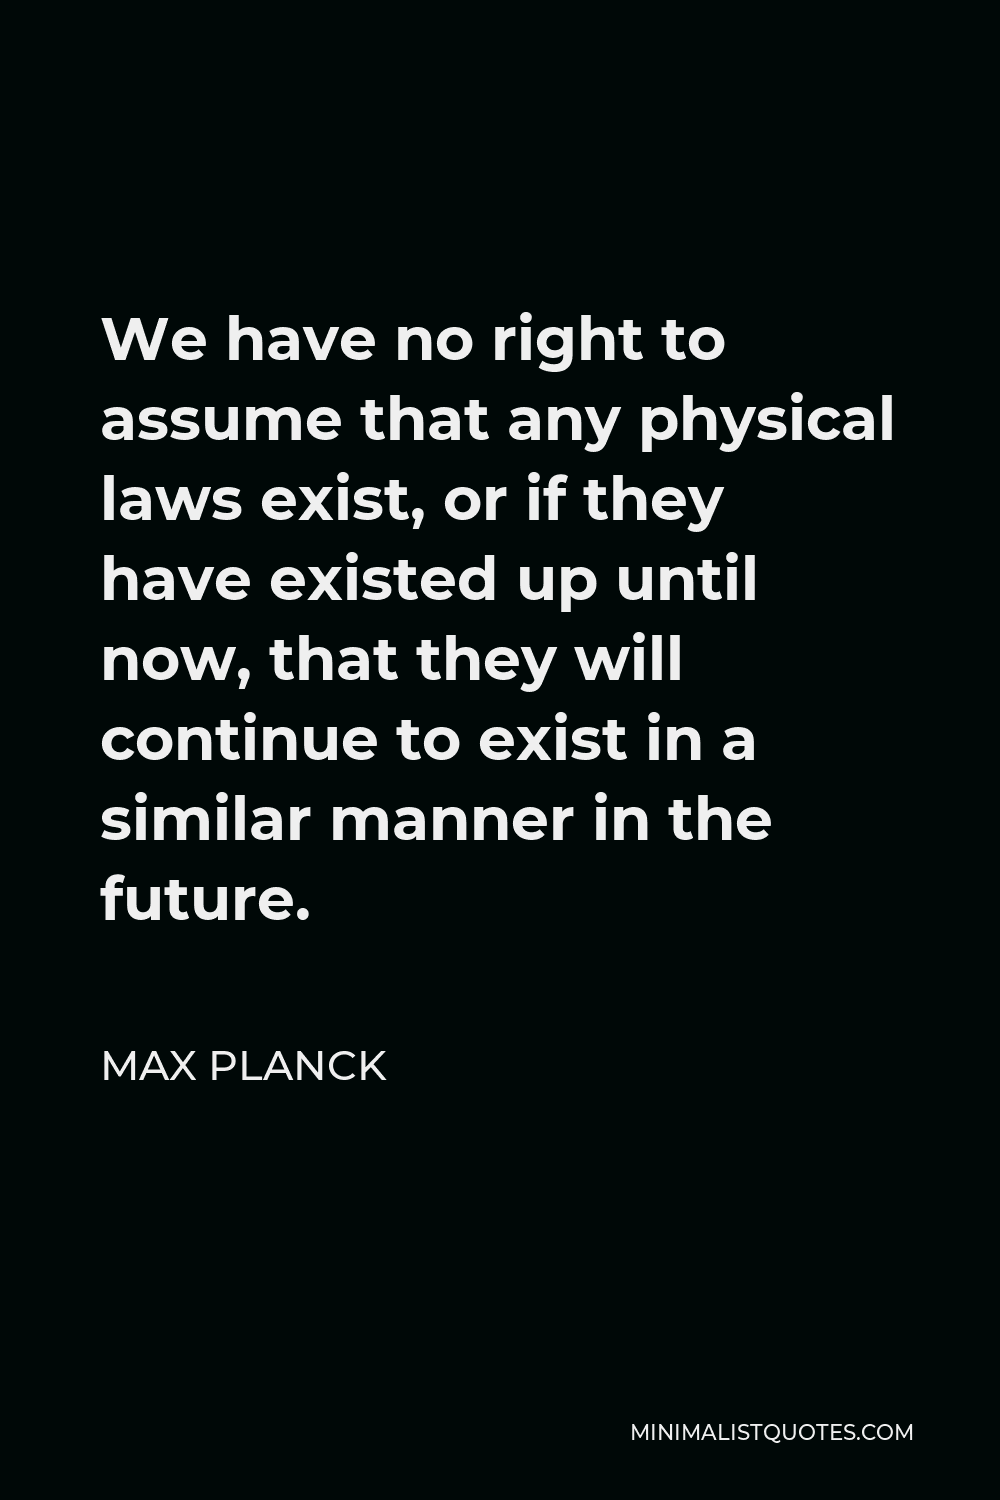 Max Planck Quote - We have no right to assume that any physical laws exist, or if they have existed up until now, that they will continue to exist in a similar manner in the future.